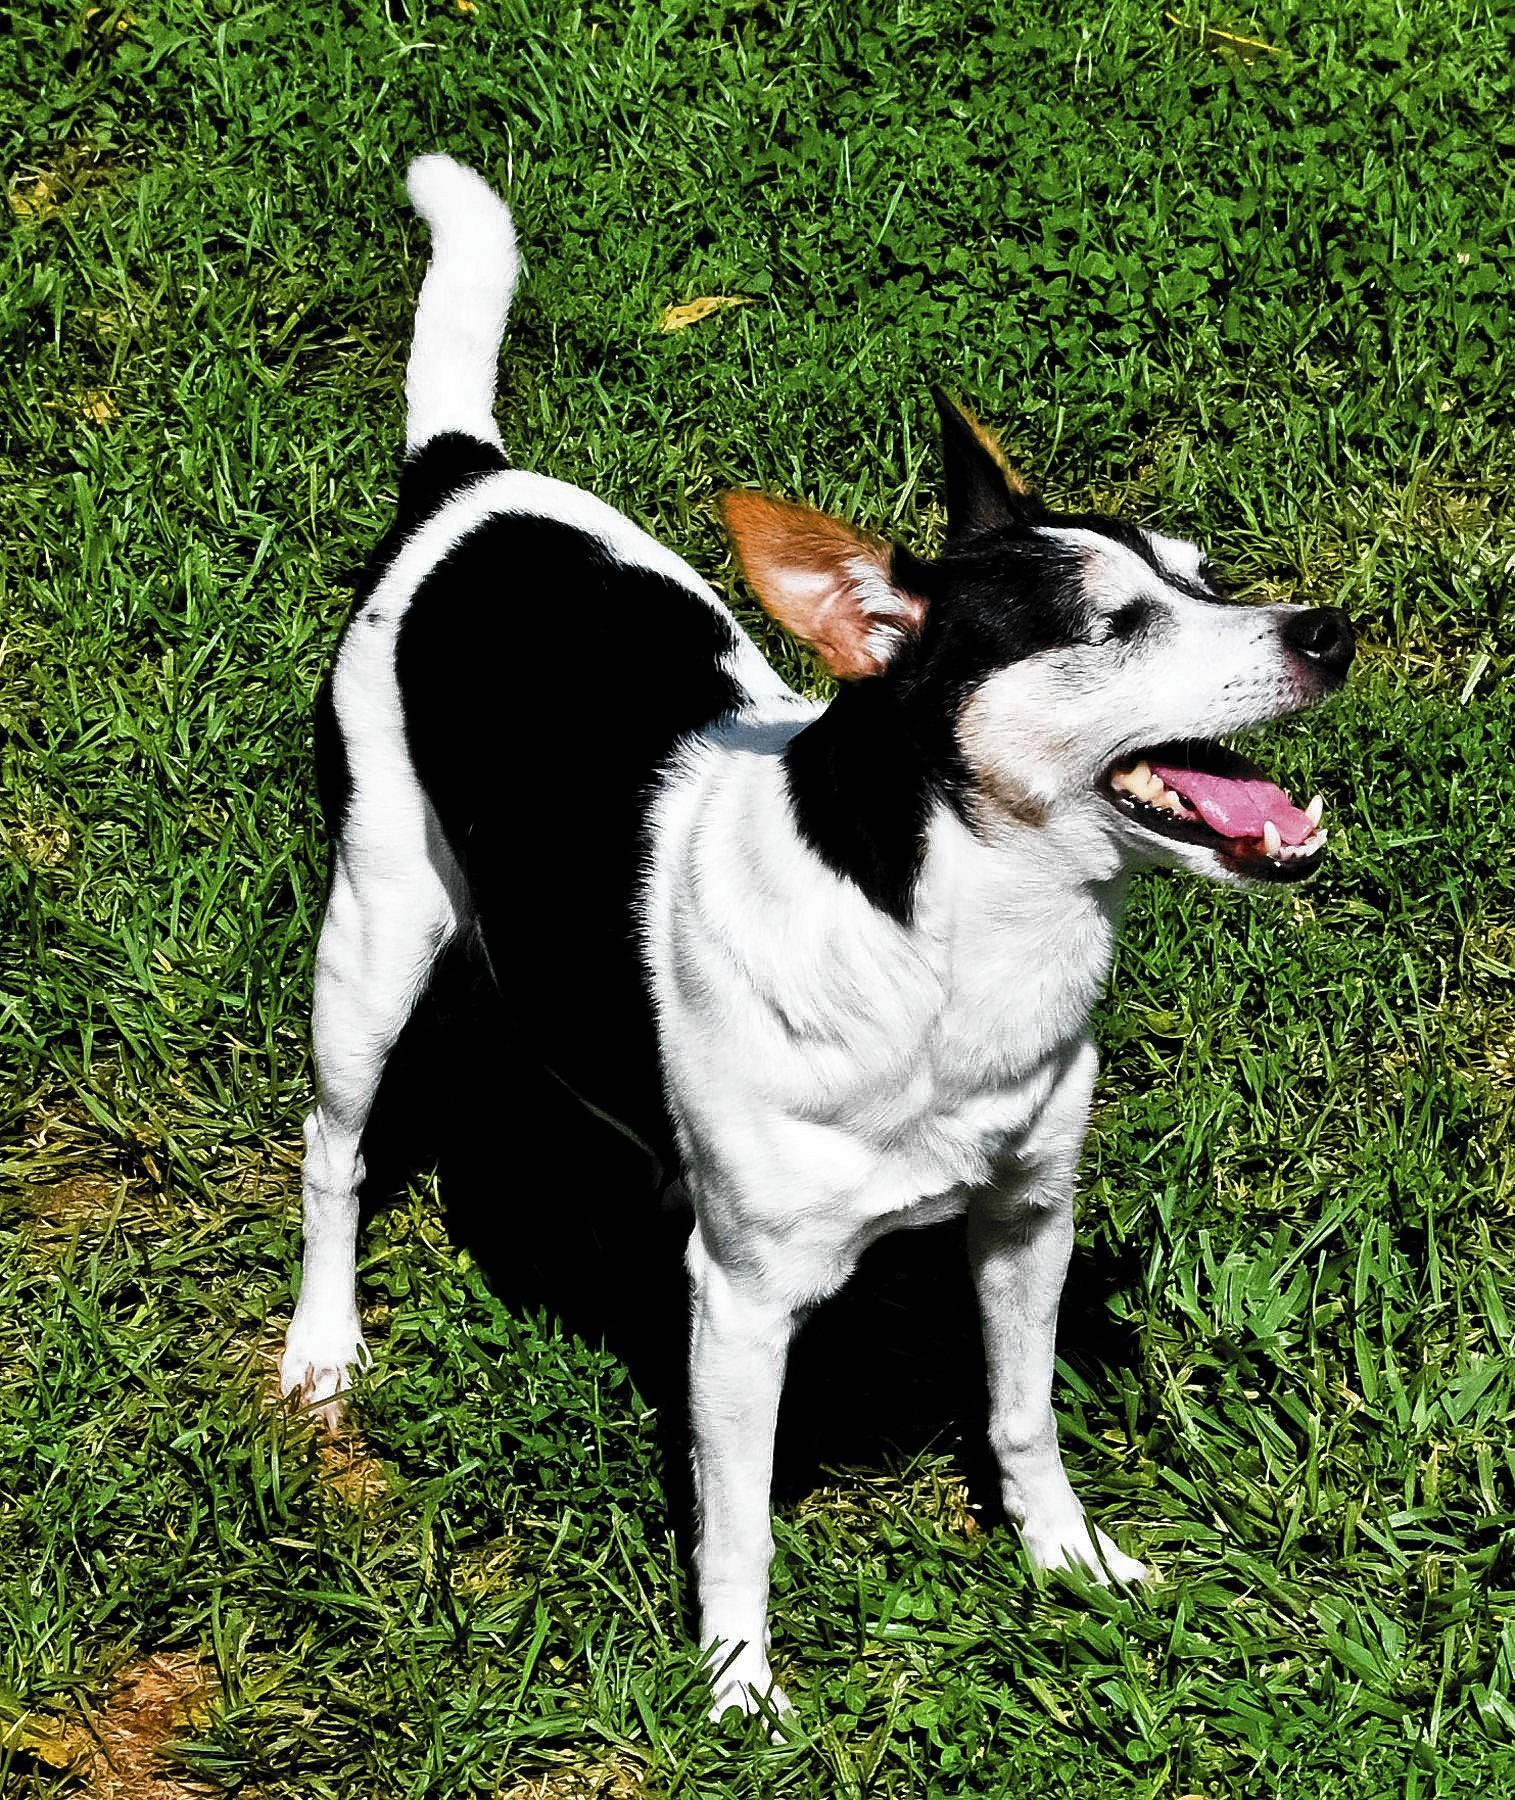 Bree, a 12 year old rat terrier, owned and loved by Brian Hite, 43, of South Whitehall Township.